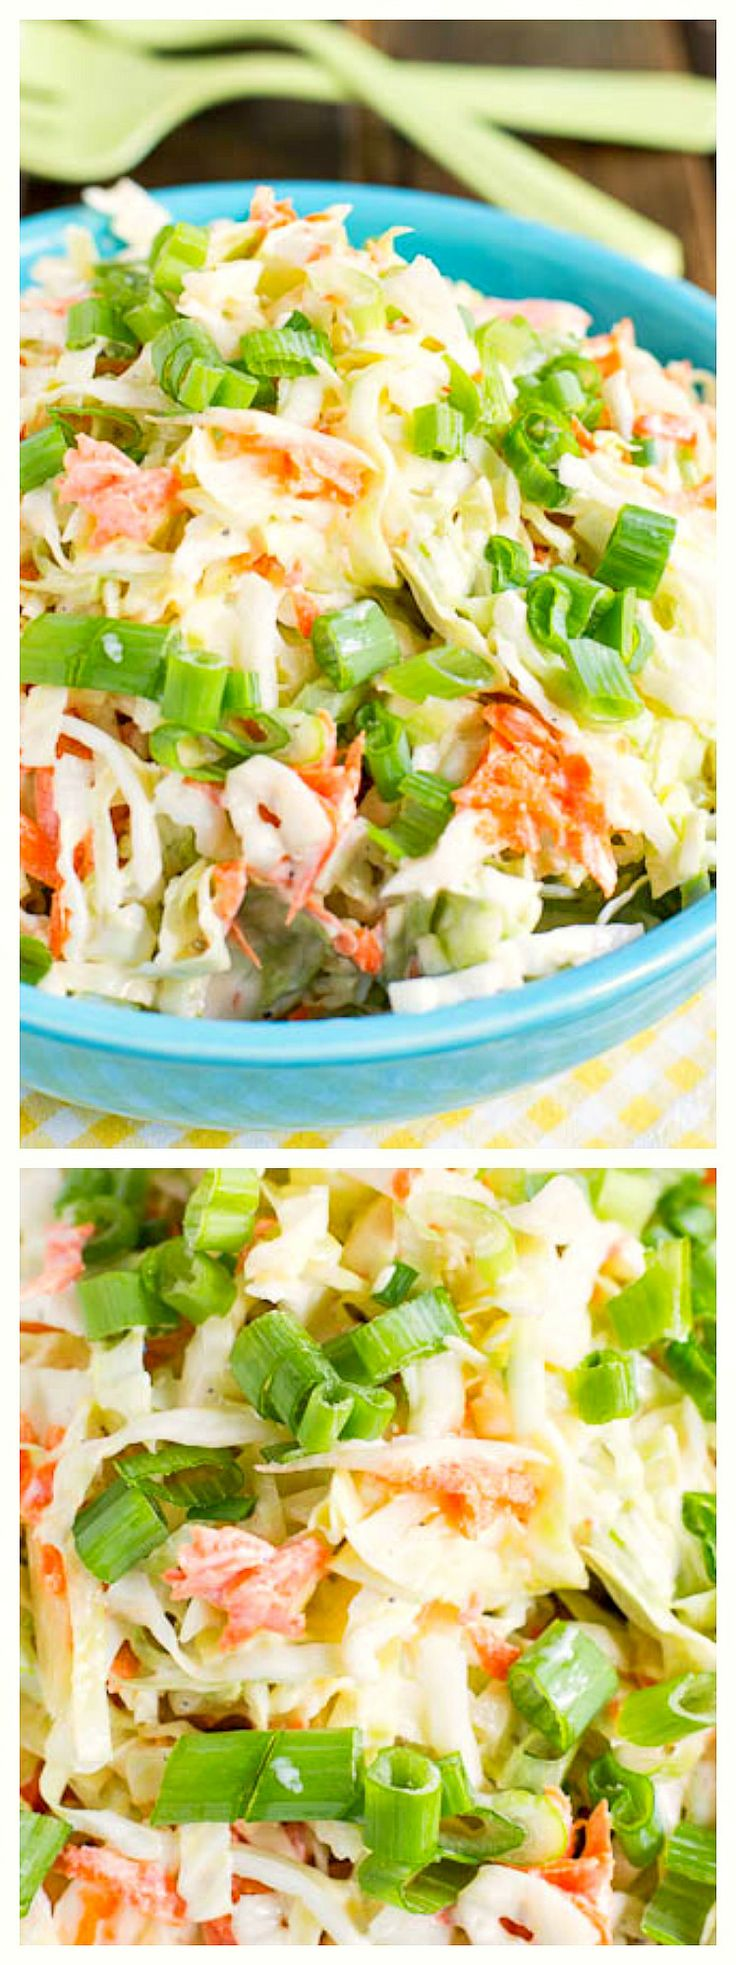 Buttermilk Coleslaw- the perfect balance of tanginess and sweet.